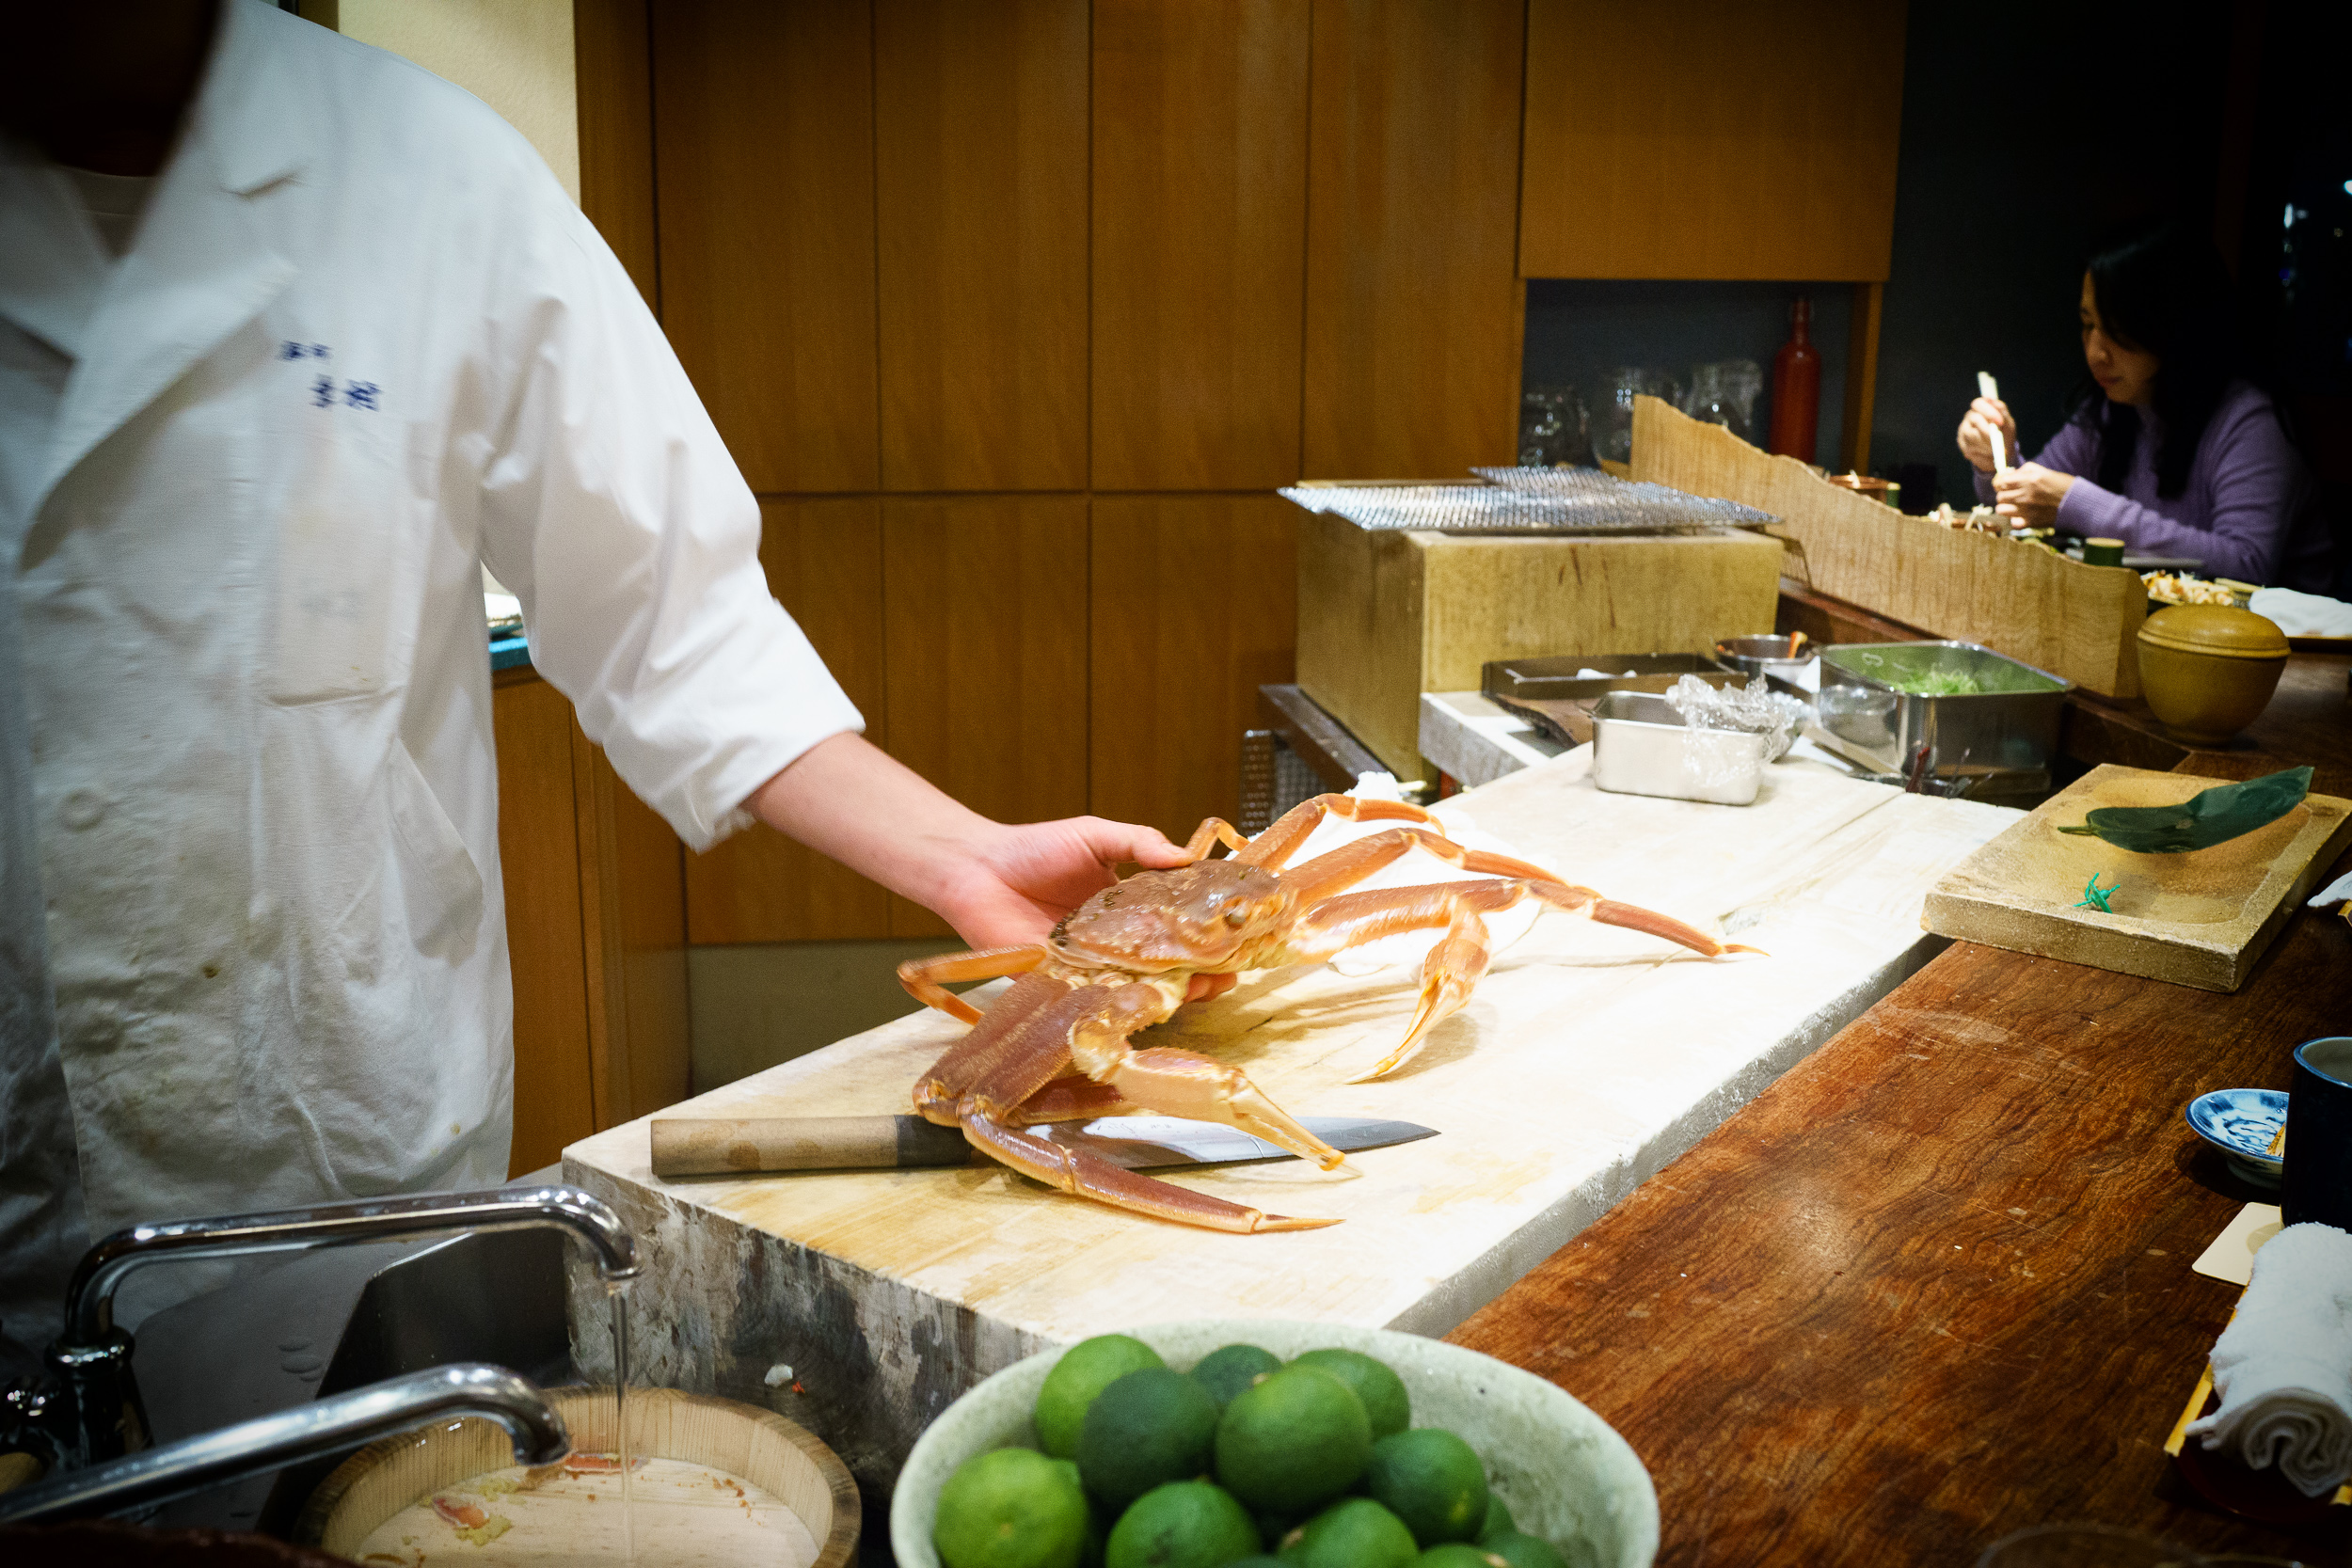 Live snow crab from Kyoto